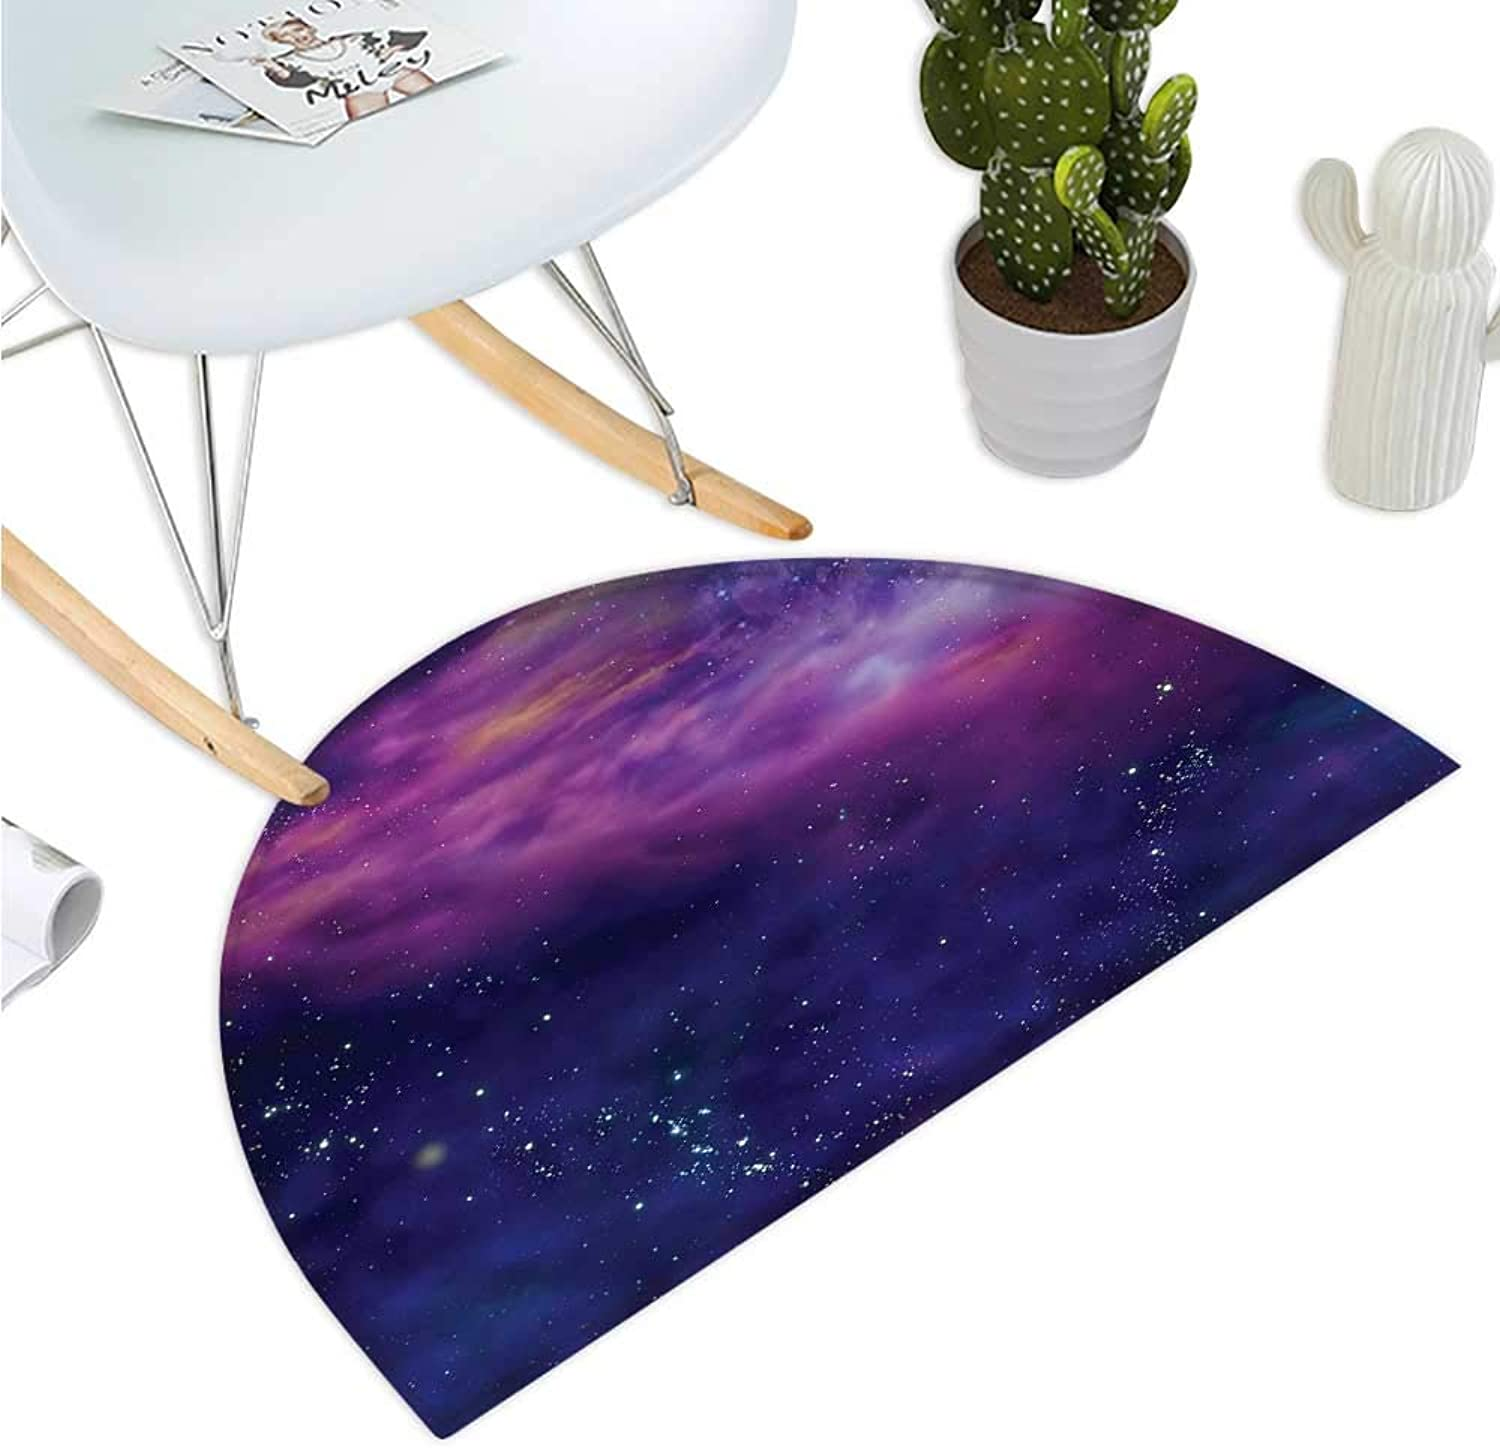 Outer Space Semicircular Cushion Spiritual Dim Star Clusters Milky Way Inspired Circle Back with Solar Elements Entry Door Mat H 47.2  xD 70.8  Purple bluee